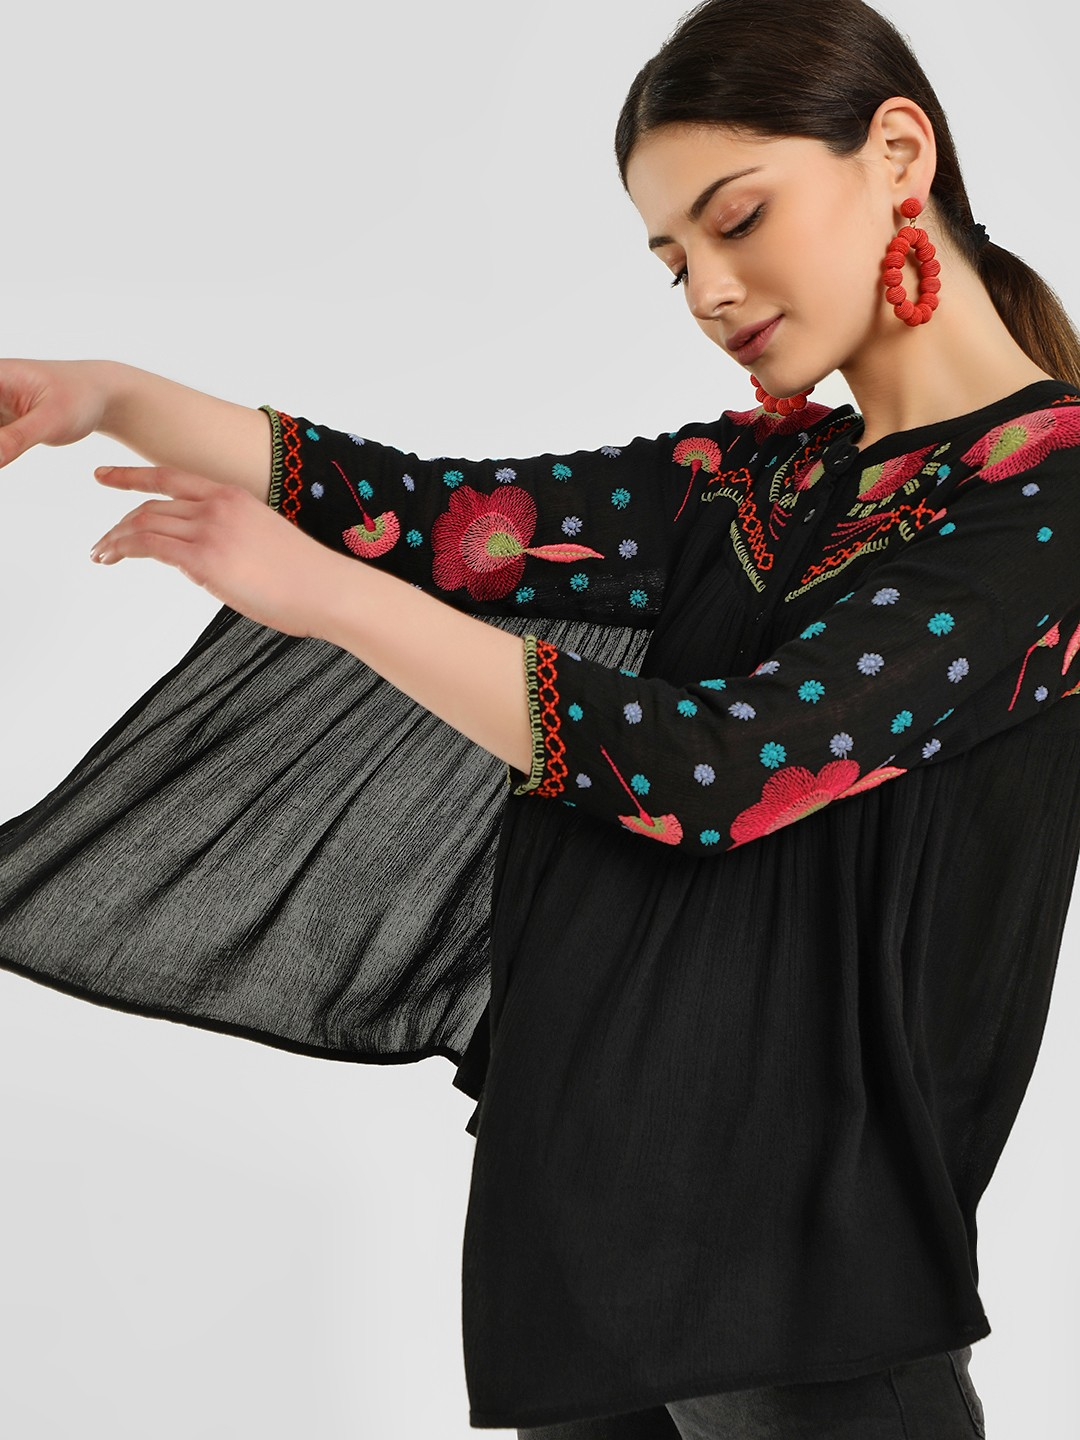 Rena Love Black Floral Embroidered Batwing Sleeve Blouse 1